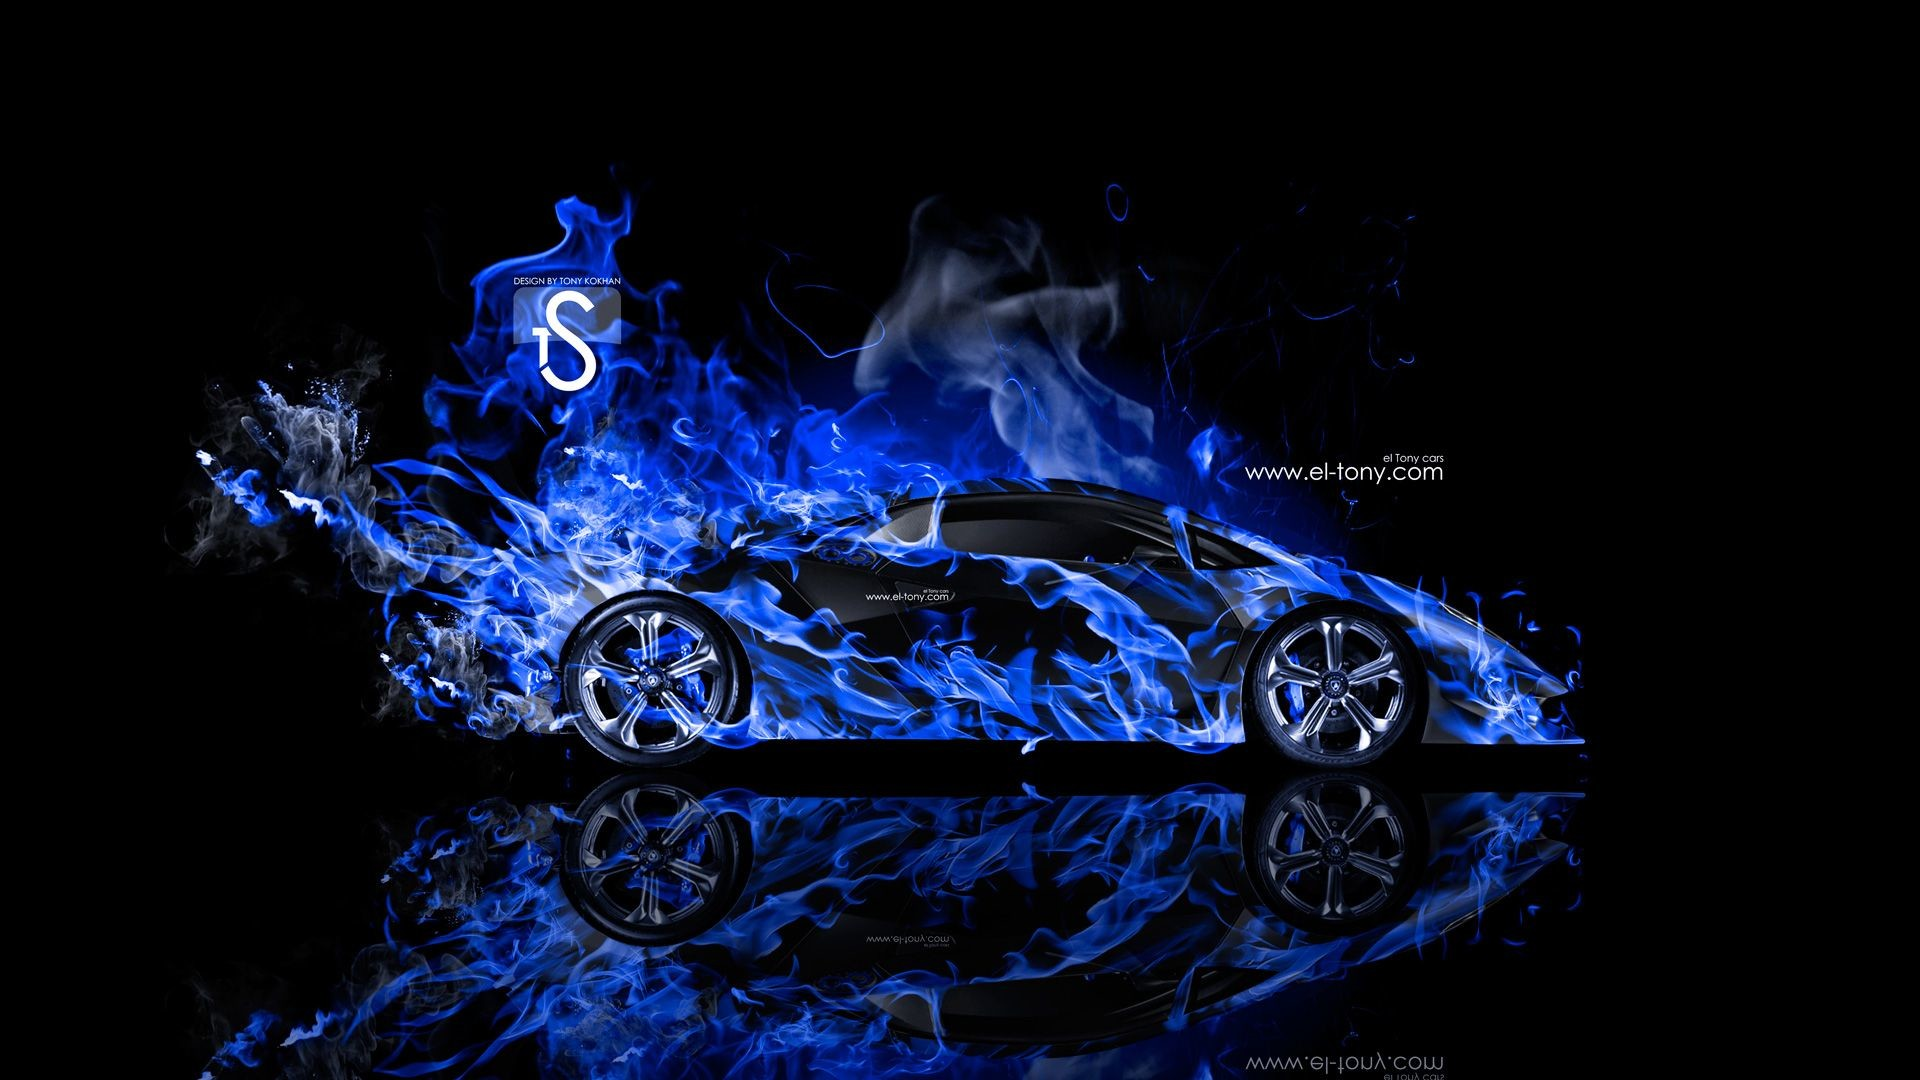 Res: 1920x1080, Black And Blue Lamborghini Wallpaper 1 Free Hd Wallpaper